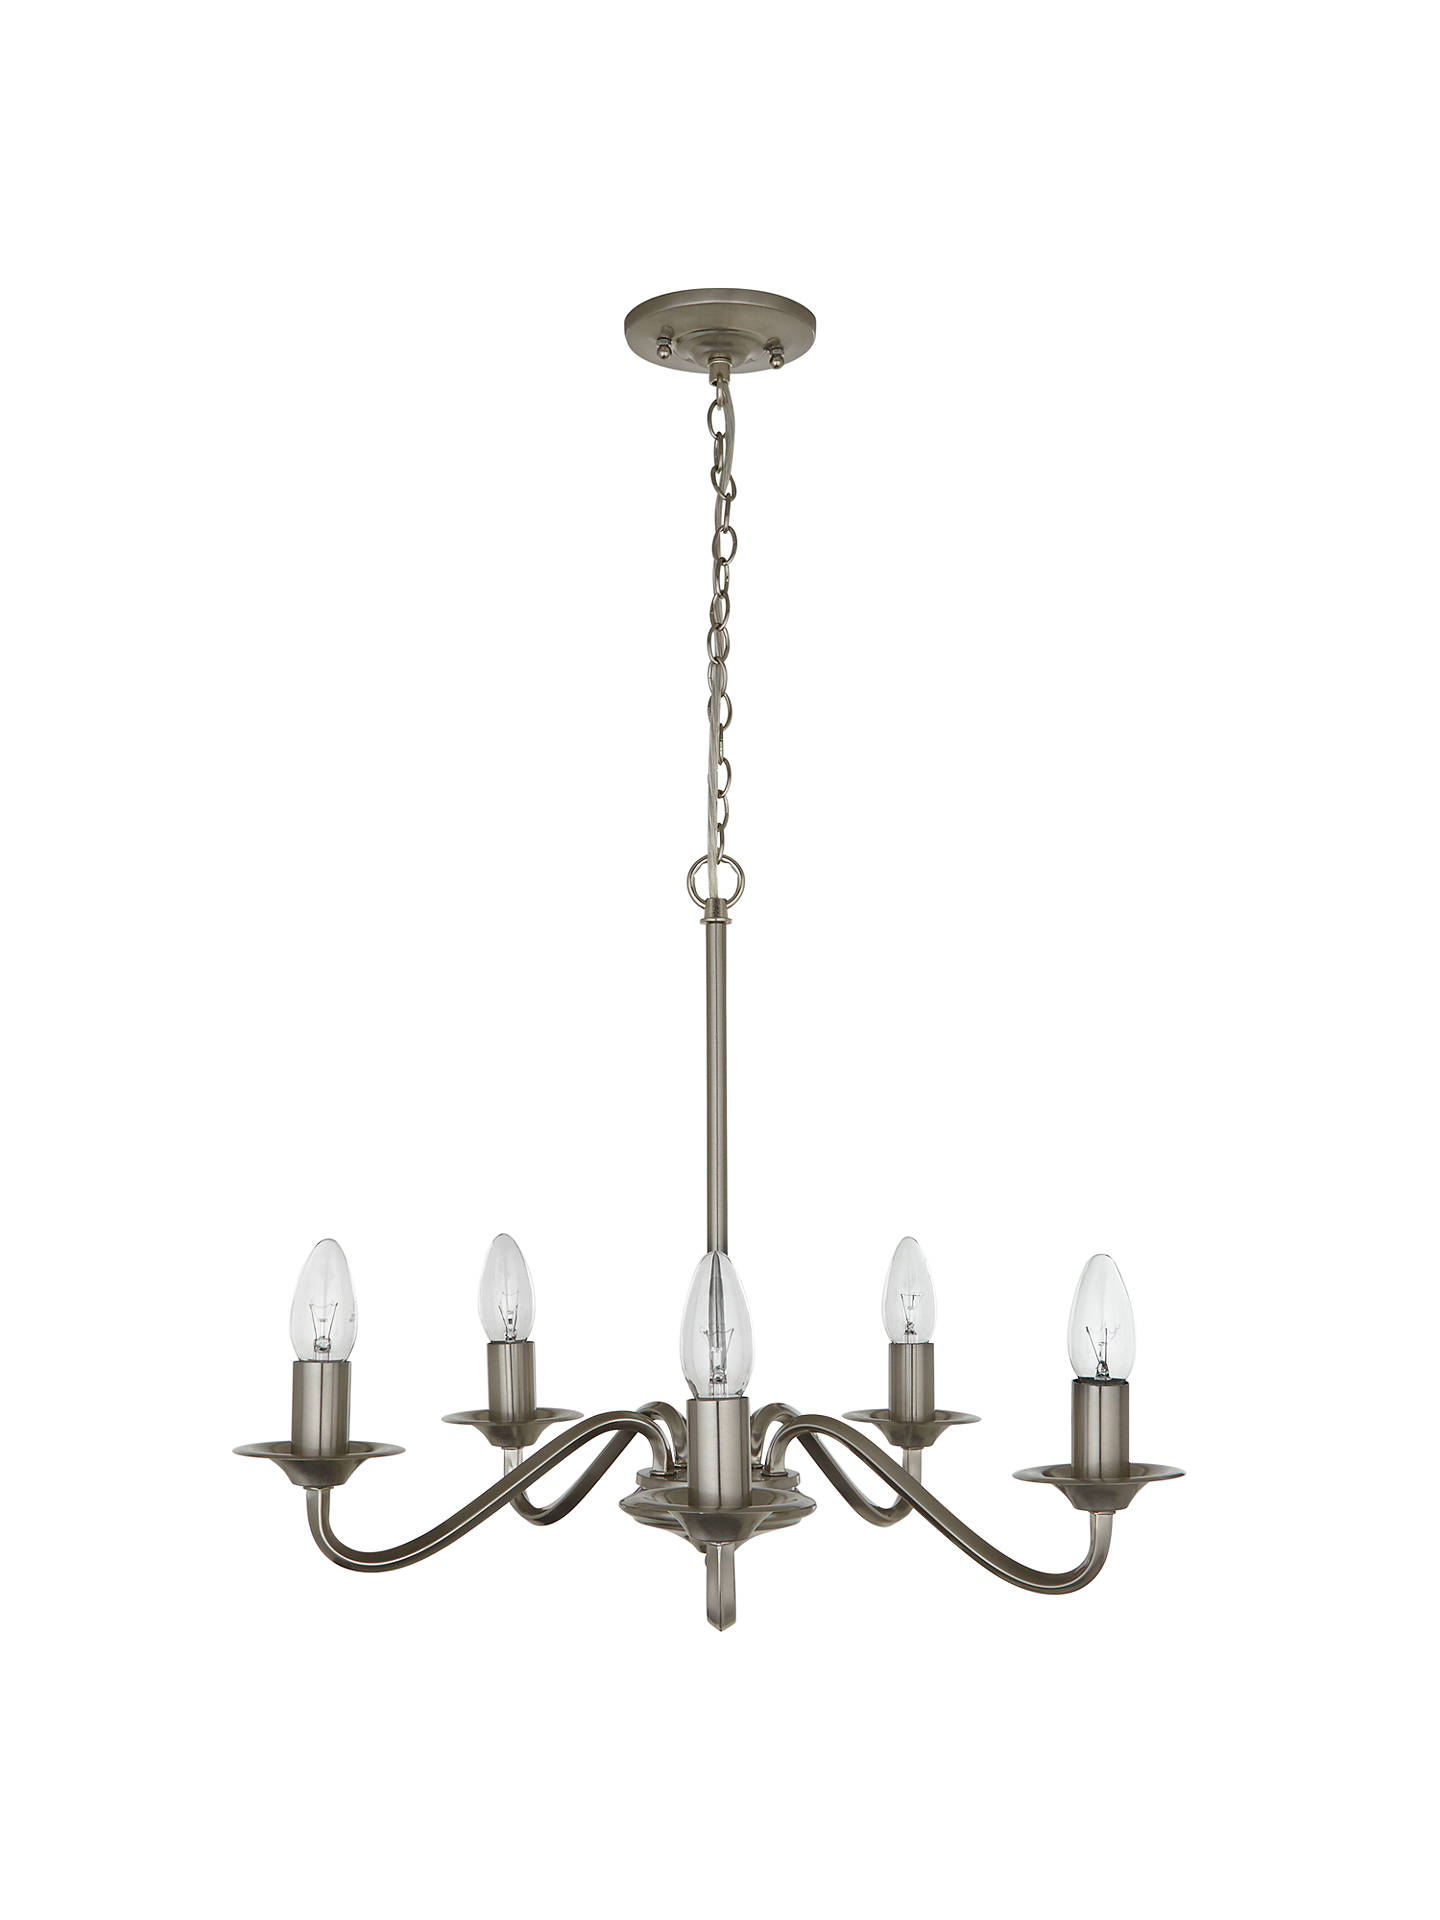 BuyJohn Lewis & Partners Wakefield Chandelier Ceiling Light, 5 Light, Satin Nickel Online at johnlewis.com